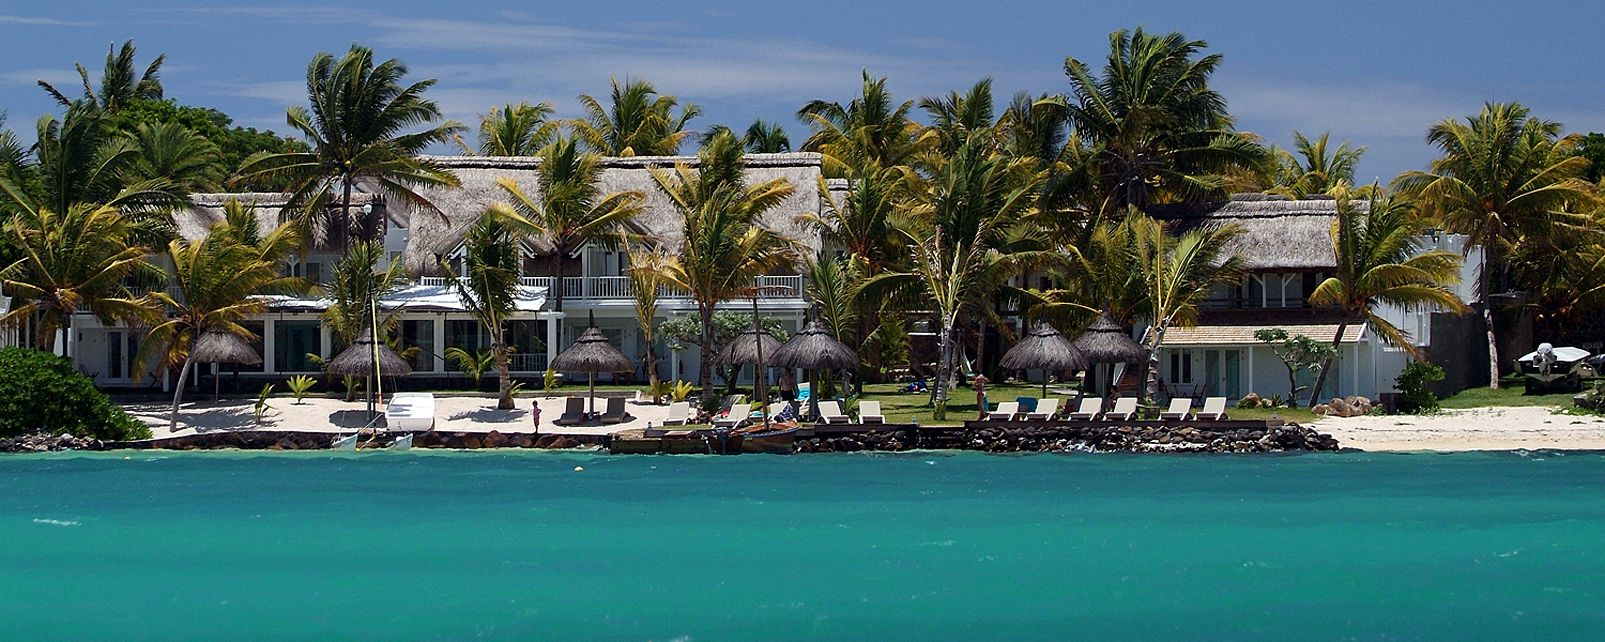 H tel 20 sud grand baie for Boutique hotel 20 sud ile maurice